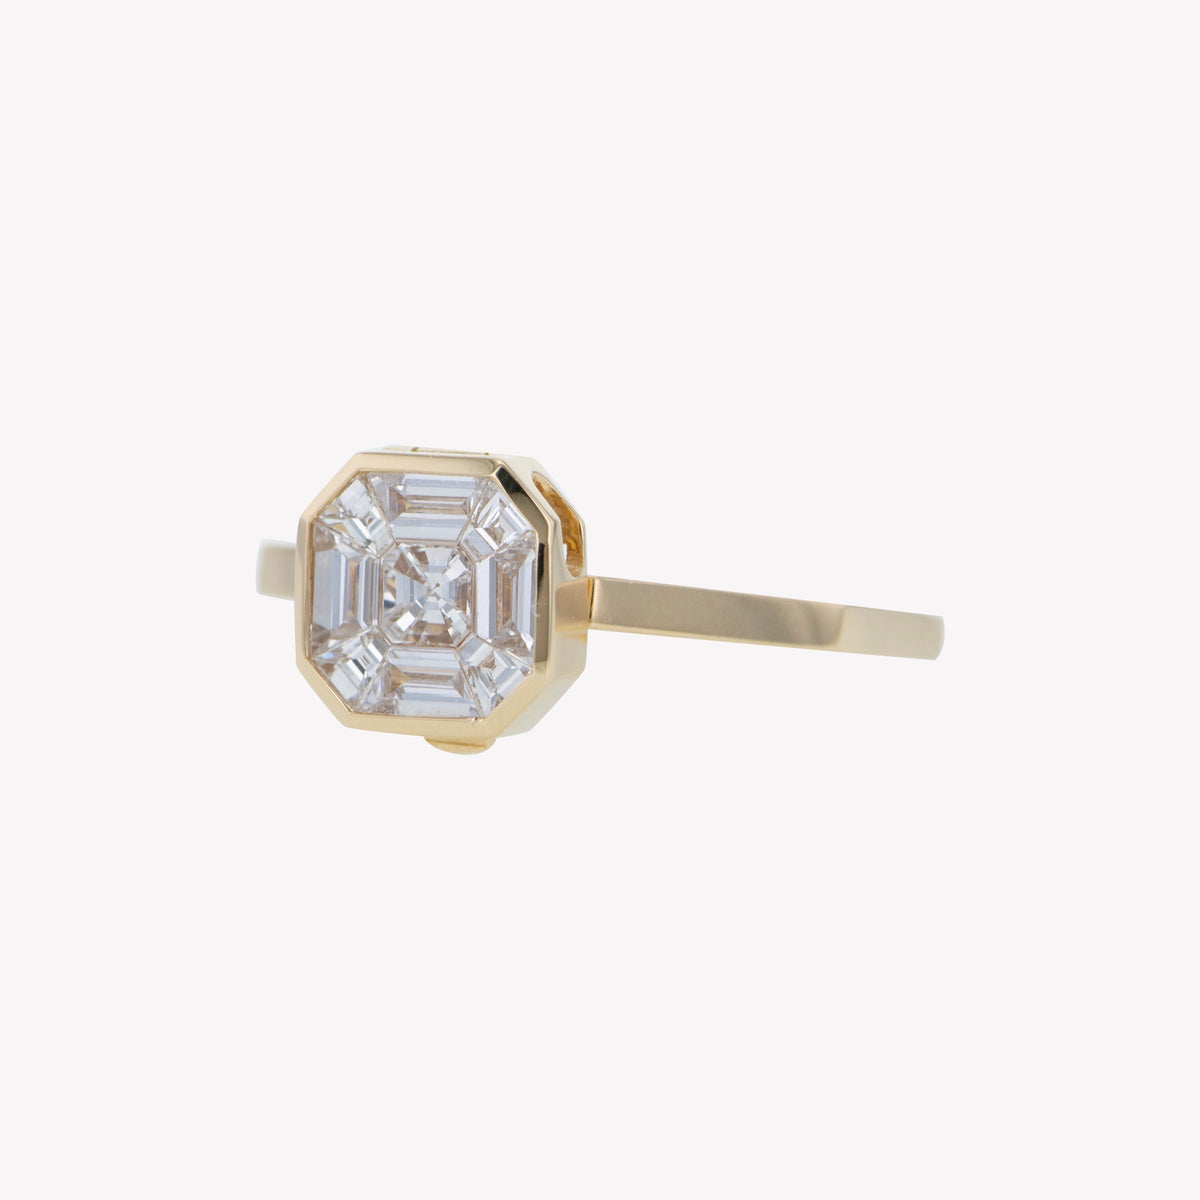 Detachable Yellow Gold Asscher Head with Octa Band